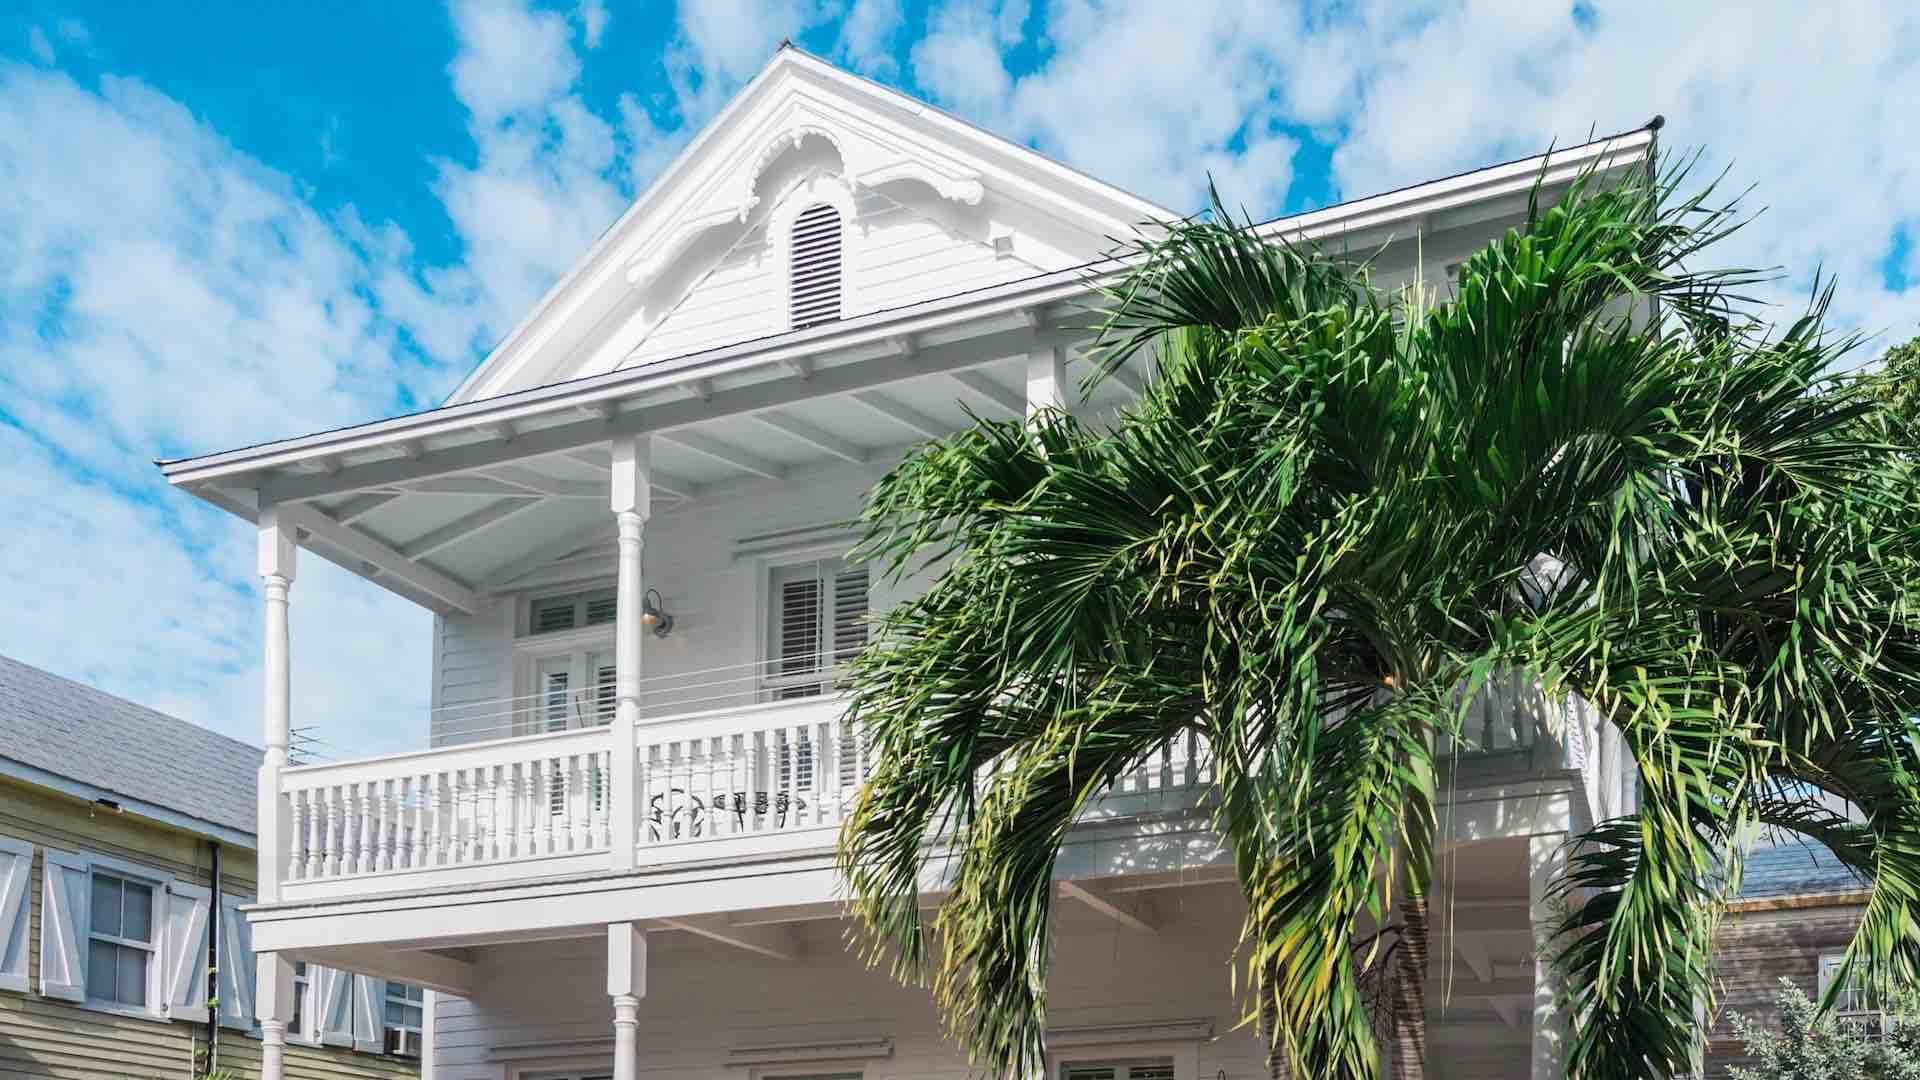 Villa Angelita is located right in Old Town just one block away from Duval Street and smack-dab in the center of the fun...